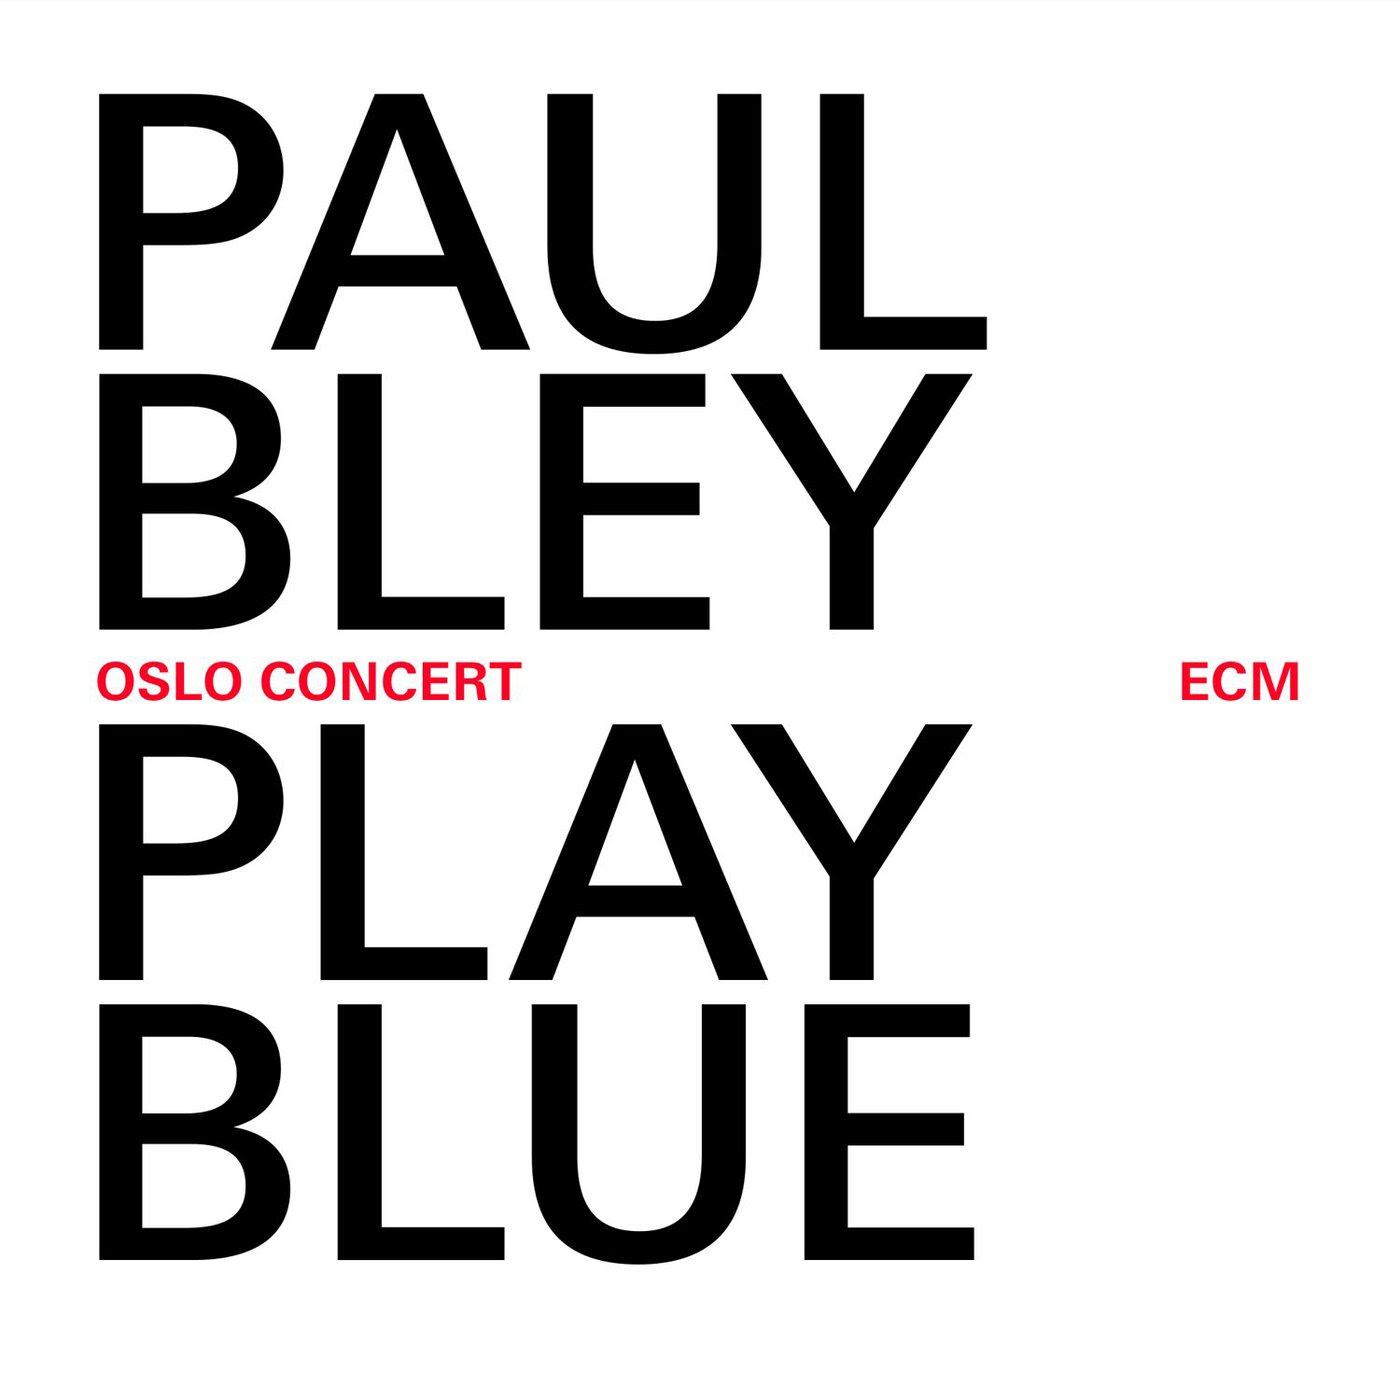 Paul Bley - Play Blue, Oslo Concert cover